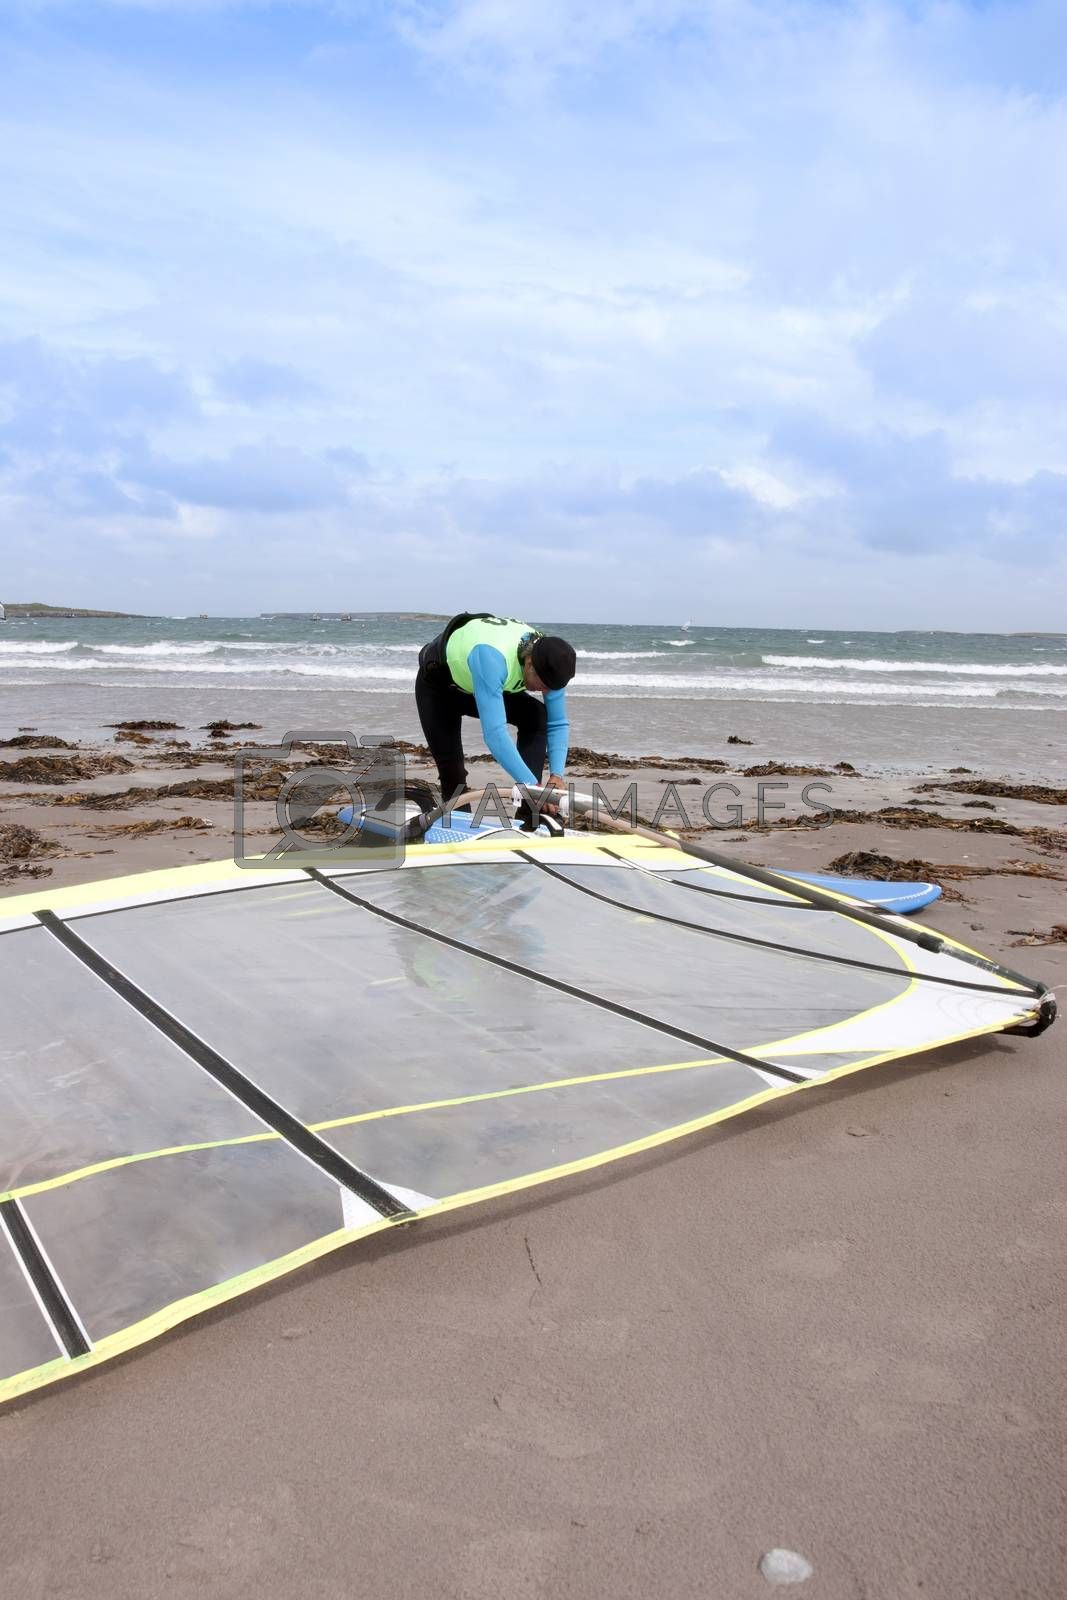 windsurfer getting equipment ready on the beach in the maharees county kerry ireland